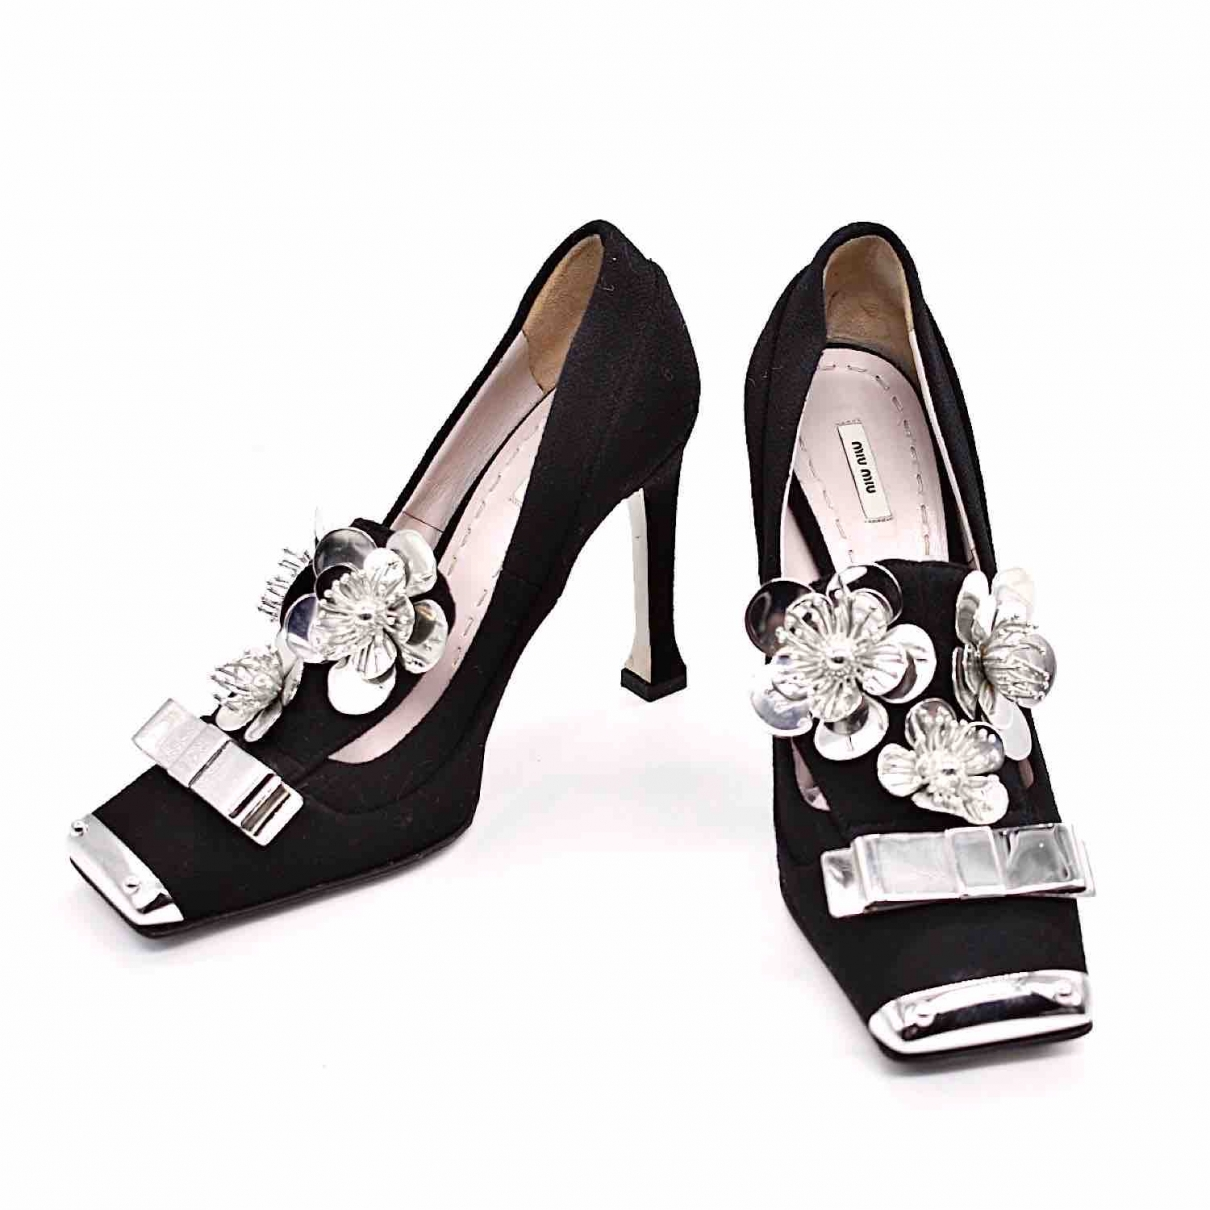 Miu Miu \N Black Leather Heels for Women 37 EU